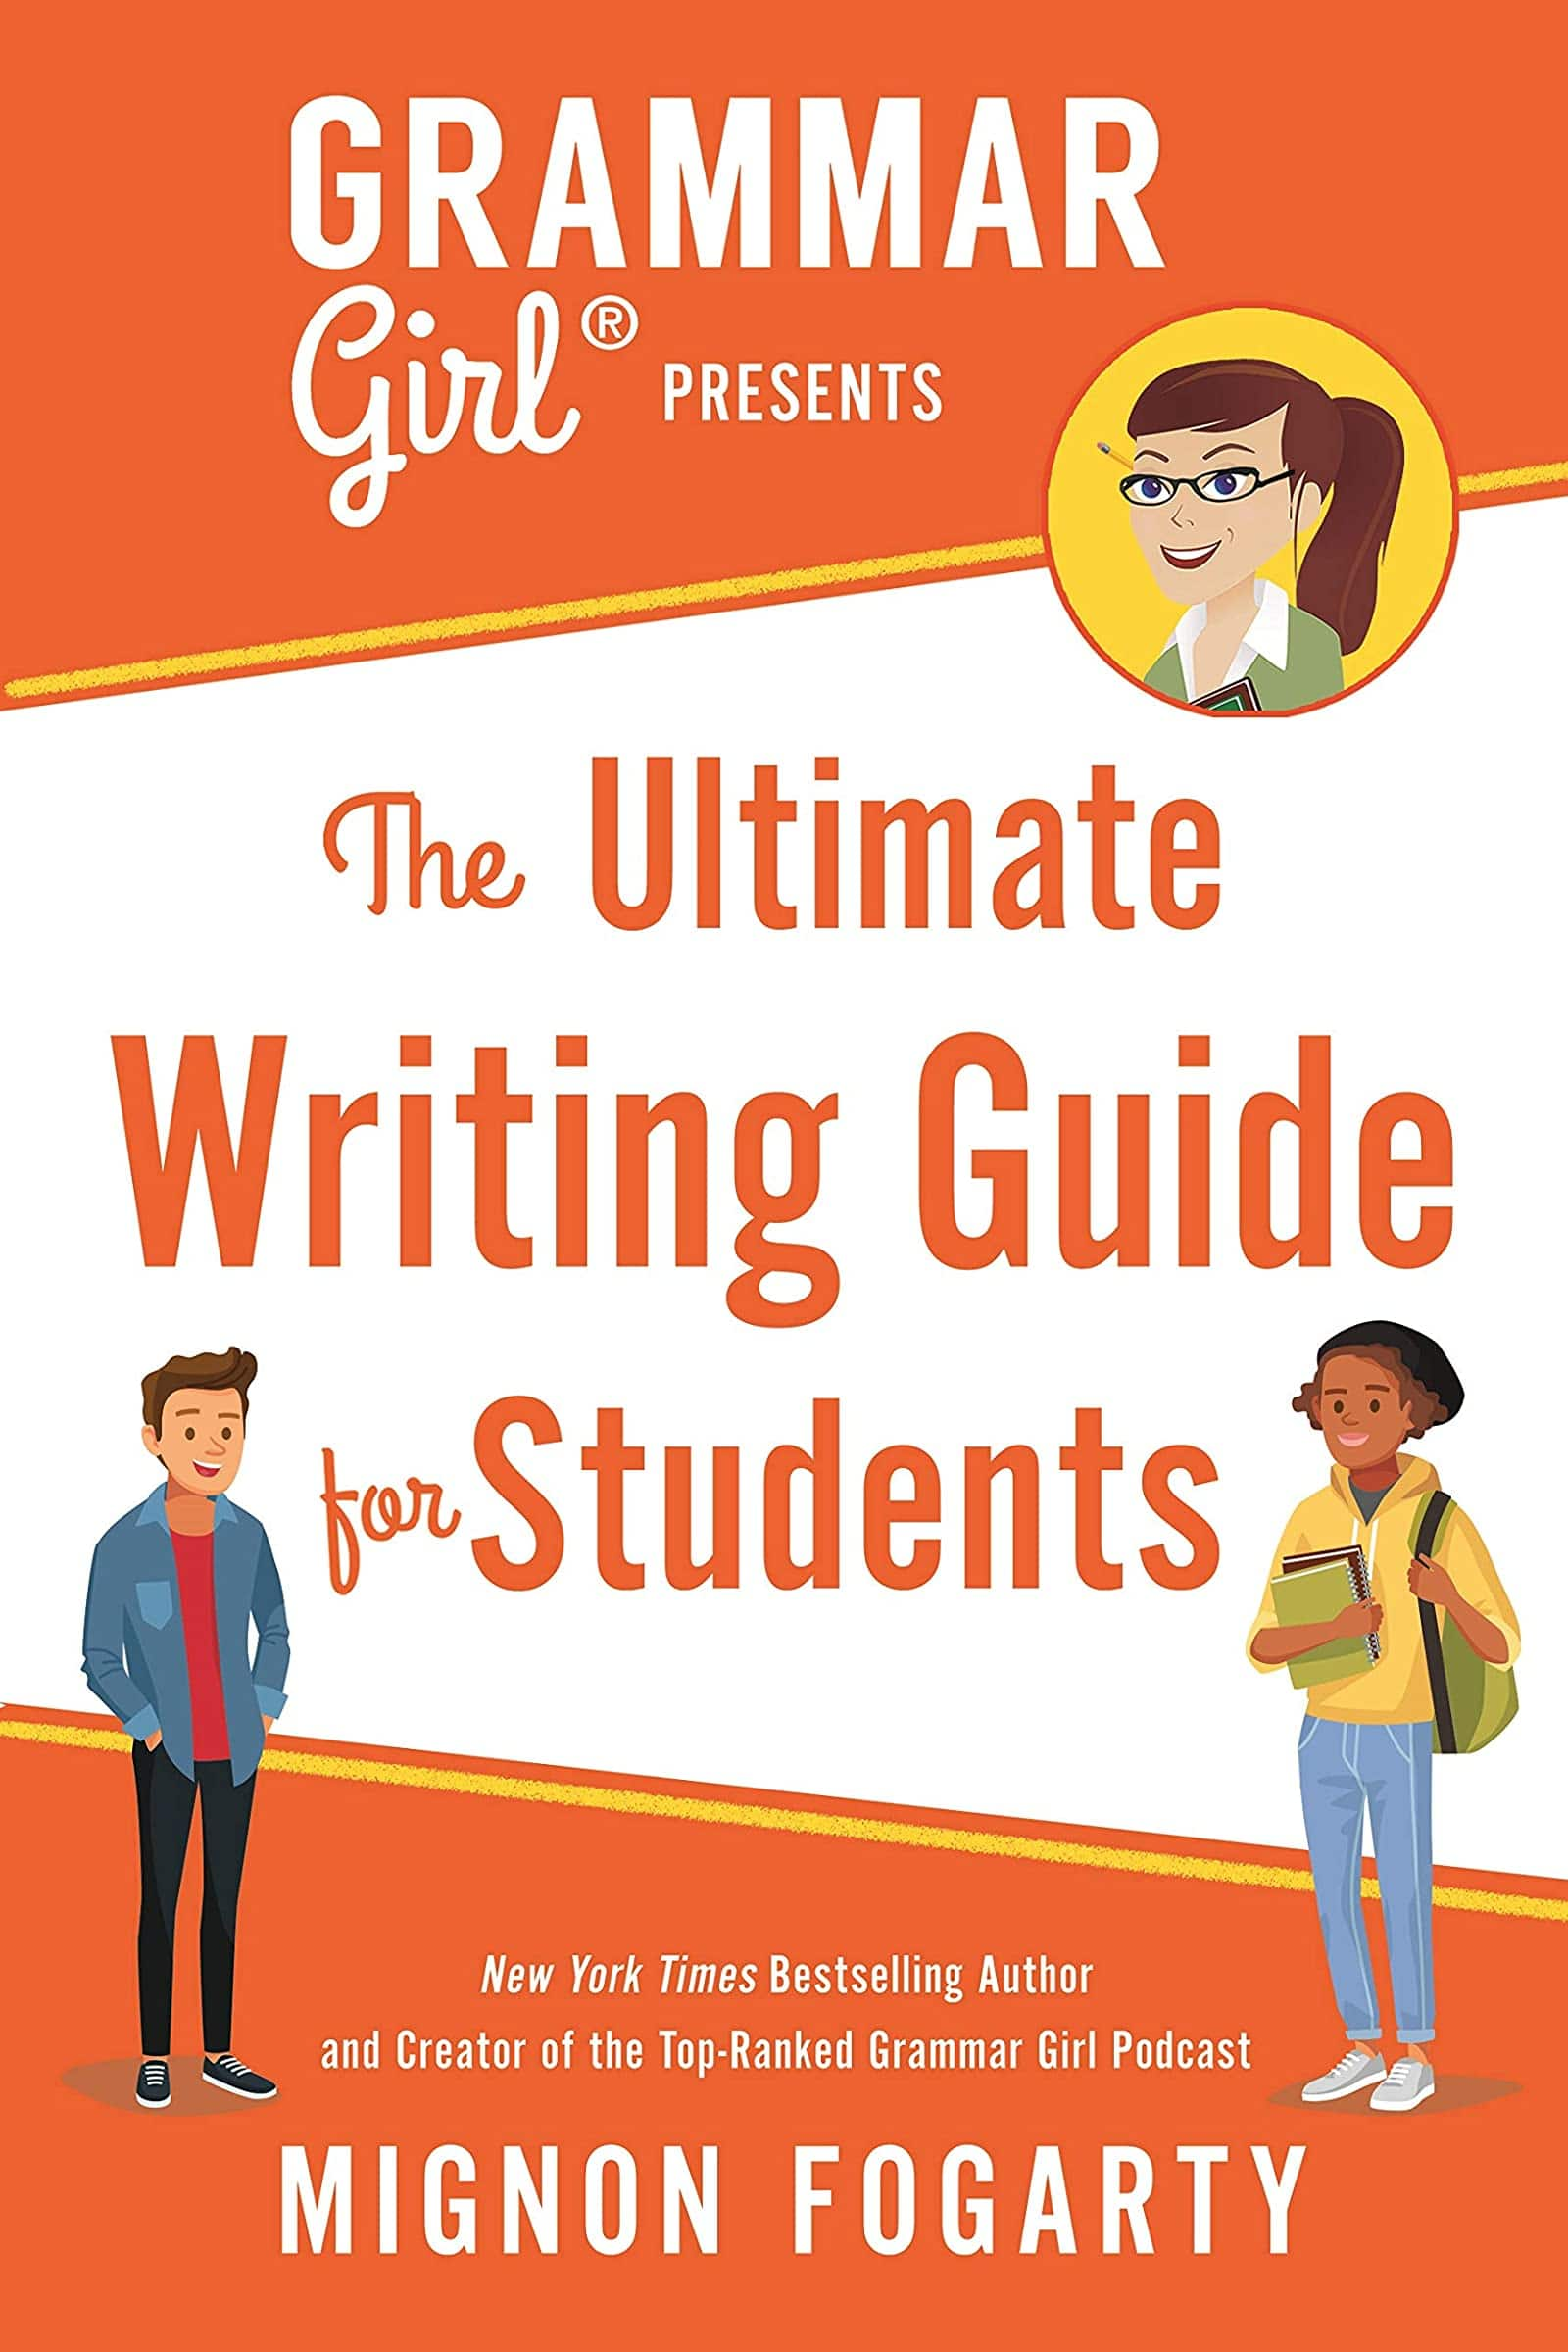 Grammar Girl Presents the Ultimate Writing Guide for Students (Kindle eBook) $1.99